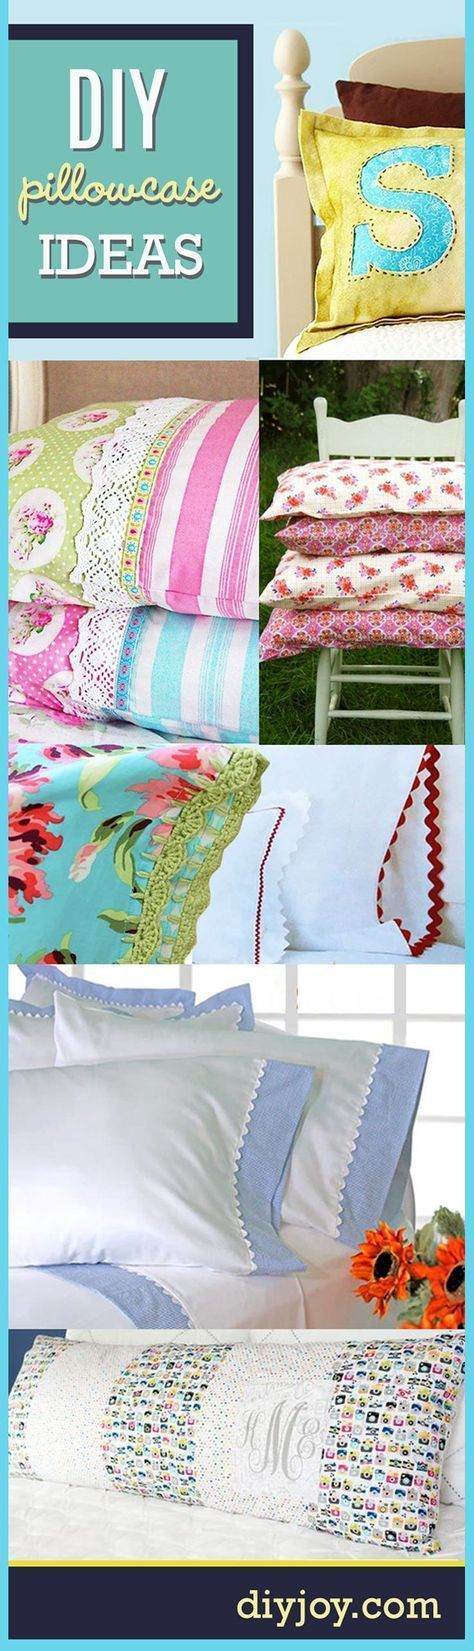 56 best 1 yard projects images on pinterest sewing ideas sewing diy pillowcases and diy sewing projects for pillows easy and creative do it yourself bedroom solutioingenieria Images